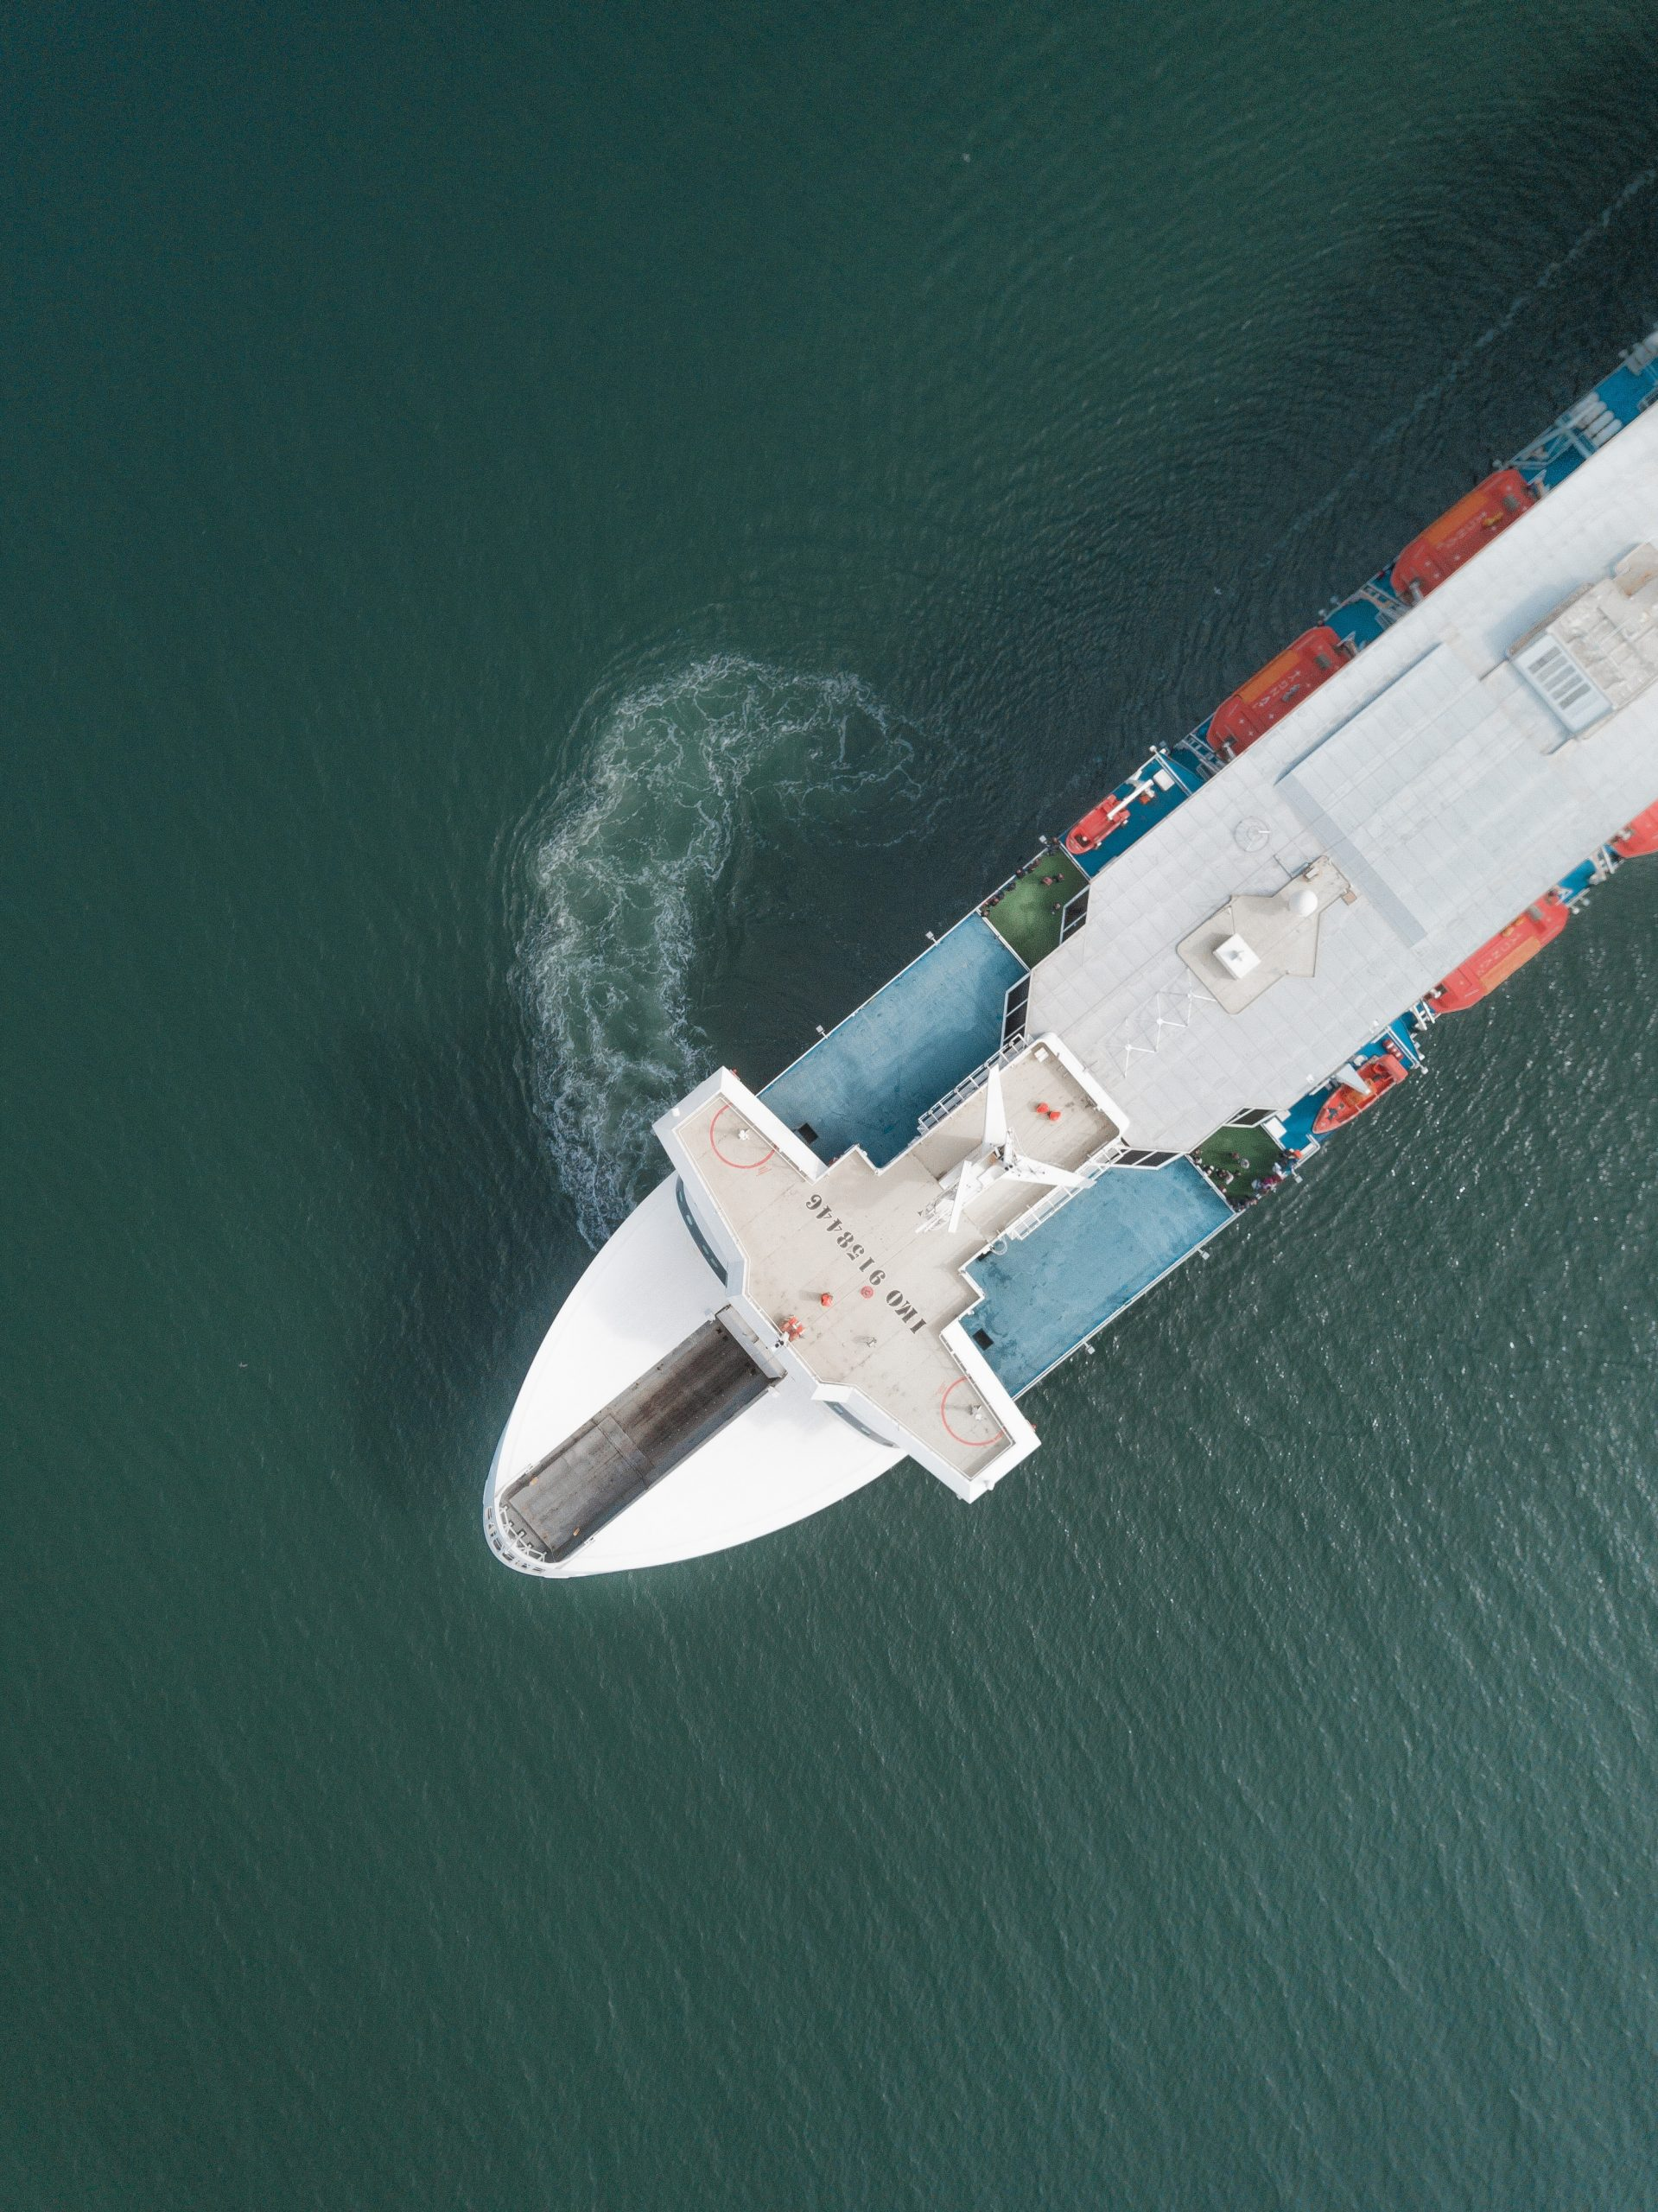 https://globalbrandcorp.com/wp-content/uploads/2021/01/aerial-view-ferry-scaled.jpg